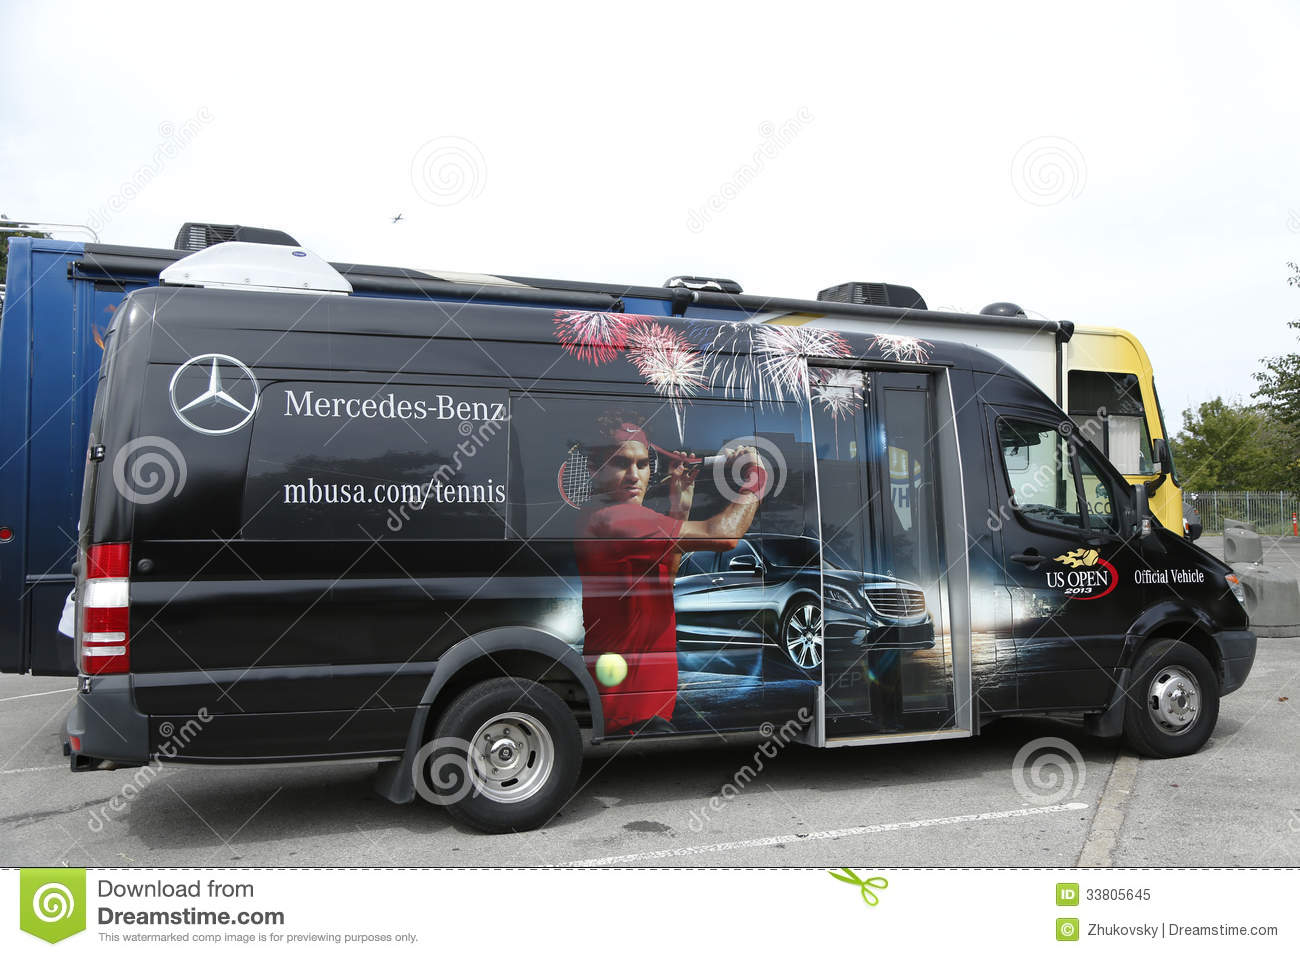 Mercedes benz bus at national tennis center during us for Mercedes benz us open